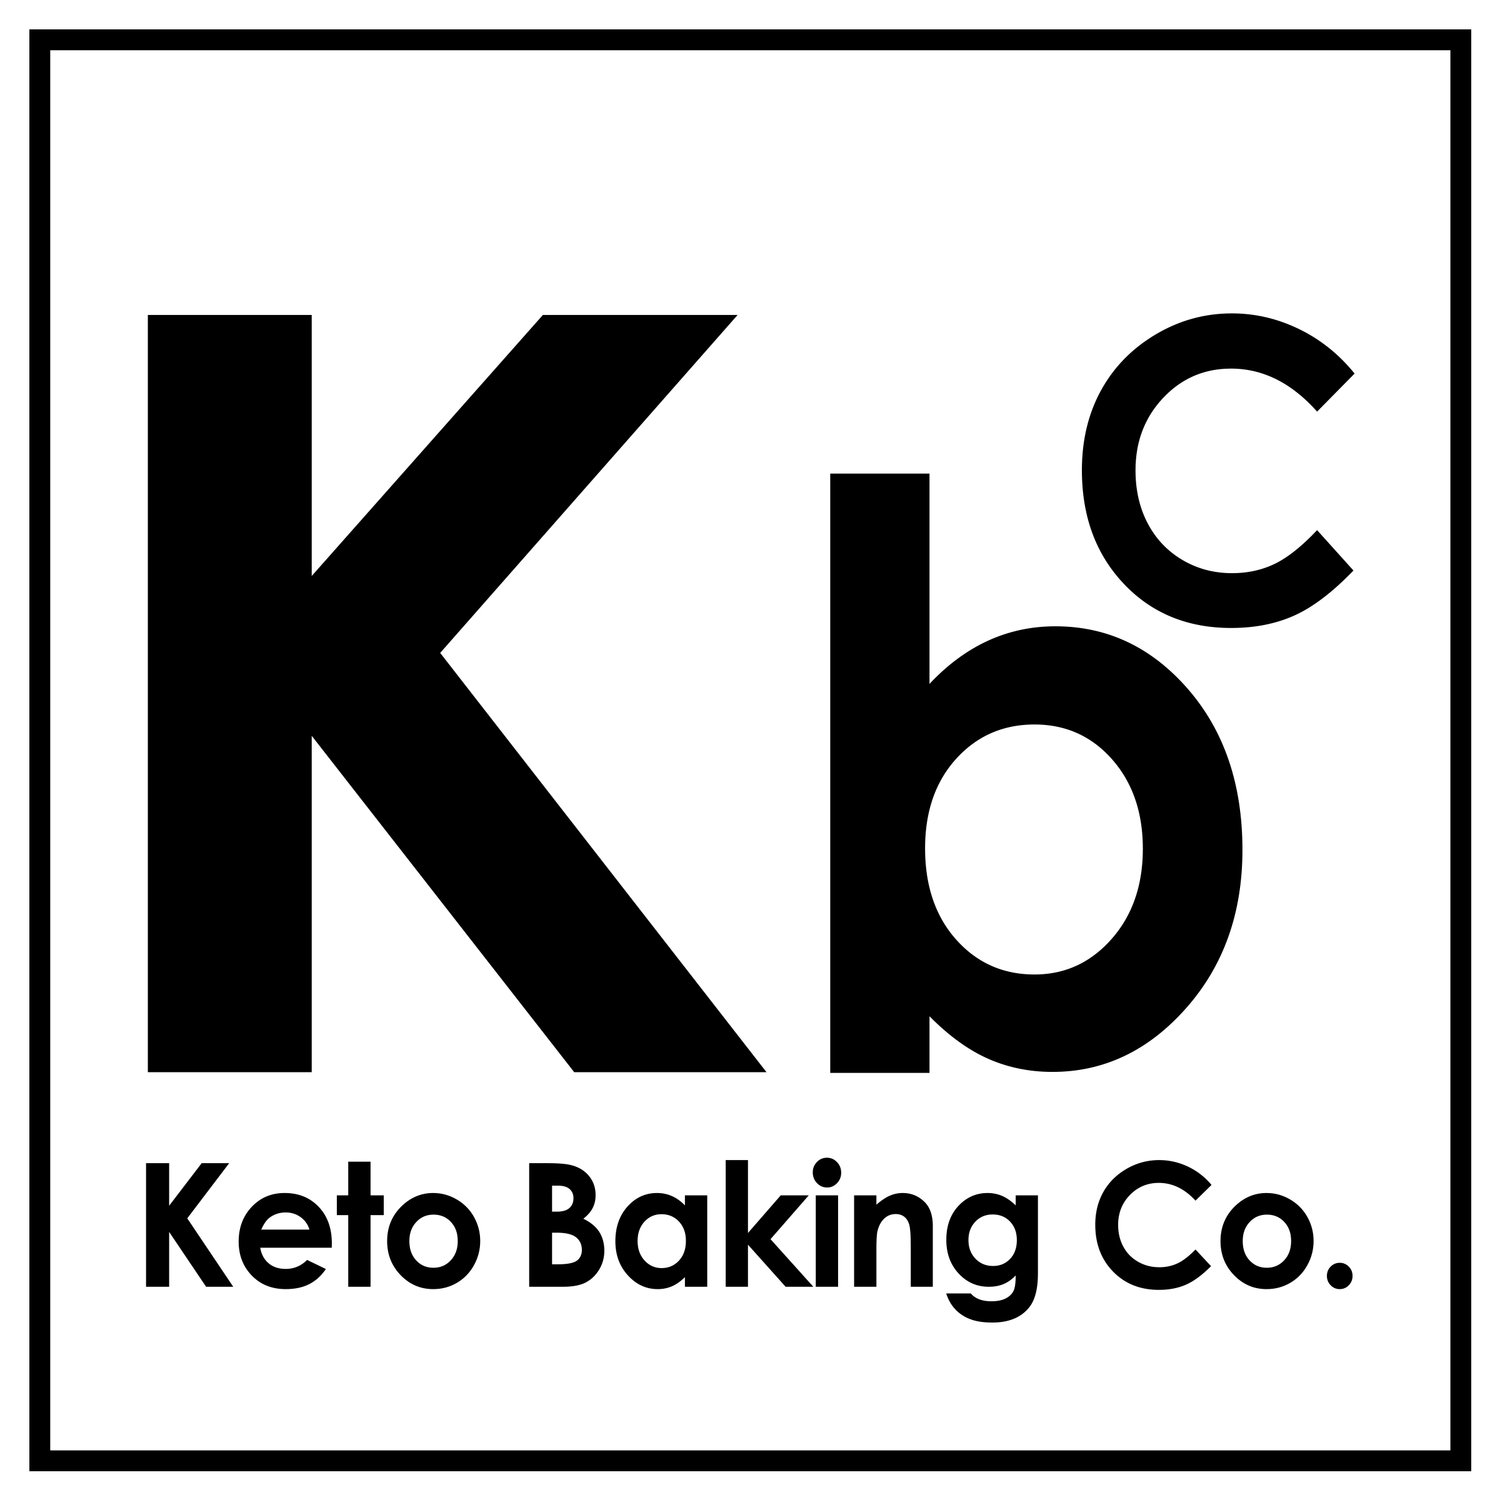 Keto Baking Co.